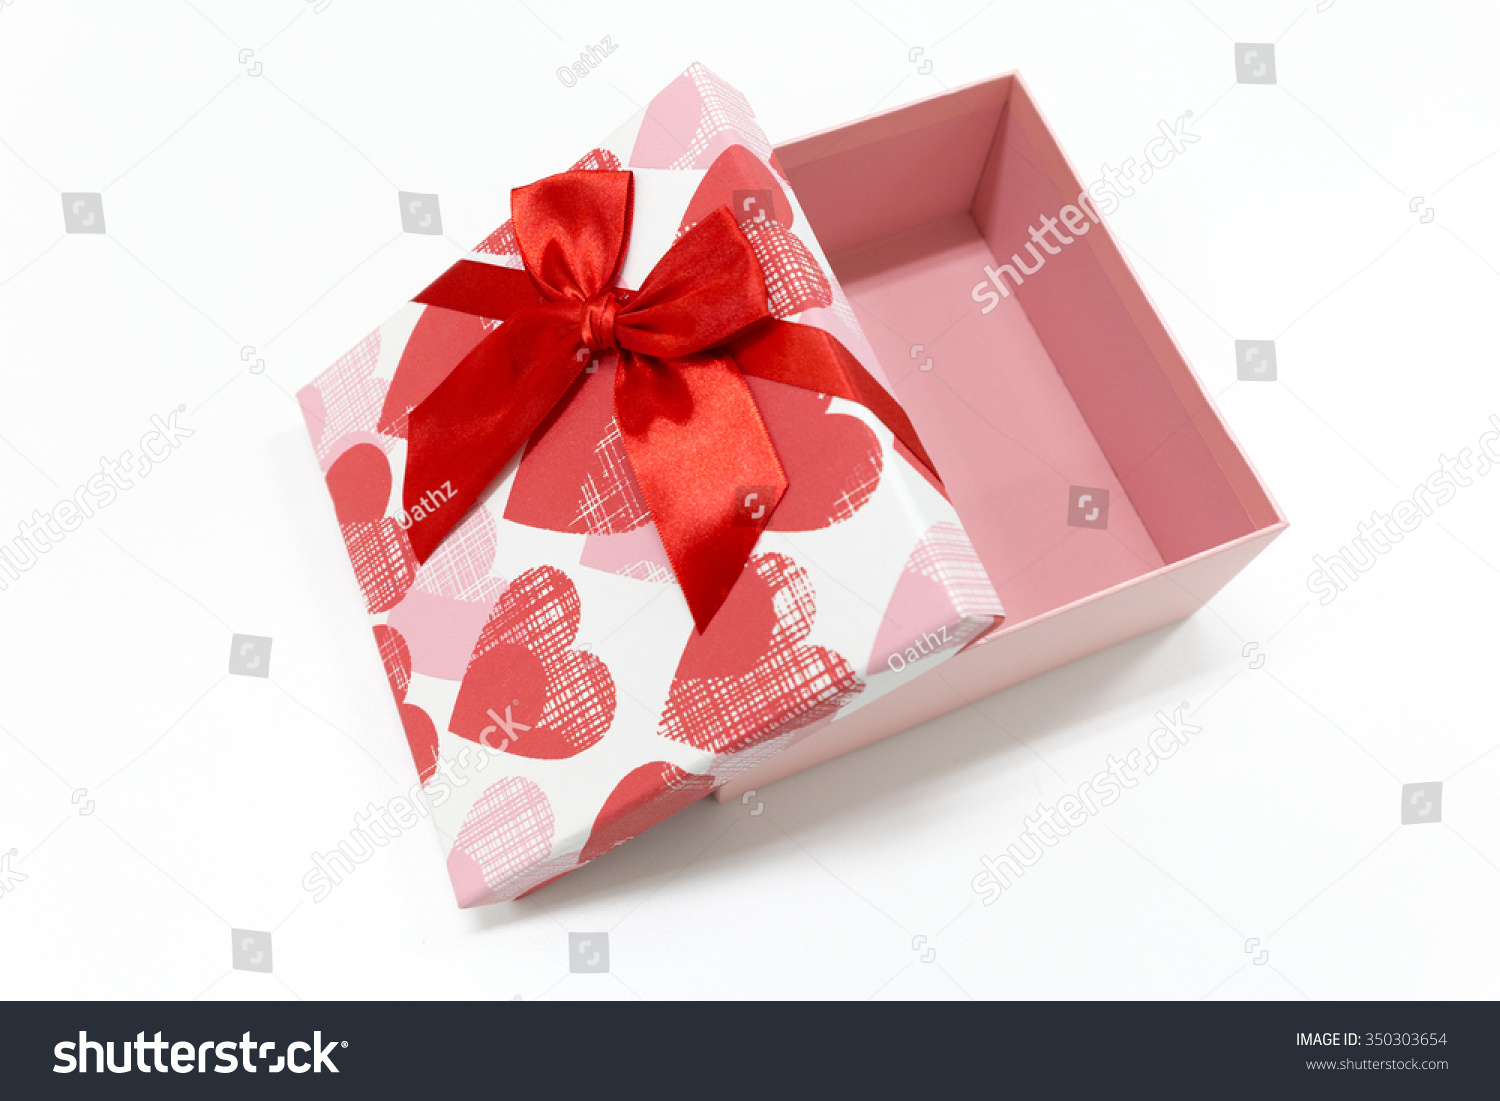 New Year Gift Valentine Gifts Stock Photo Edit Now 350303654